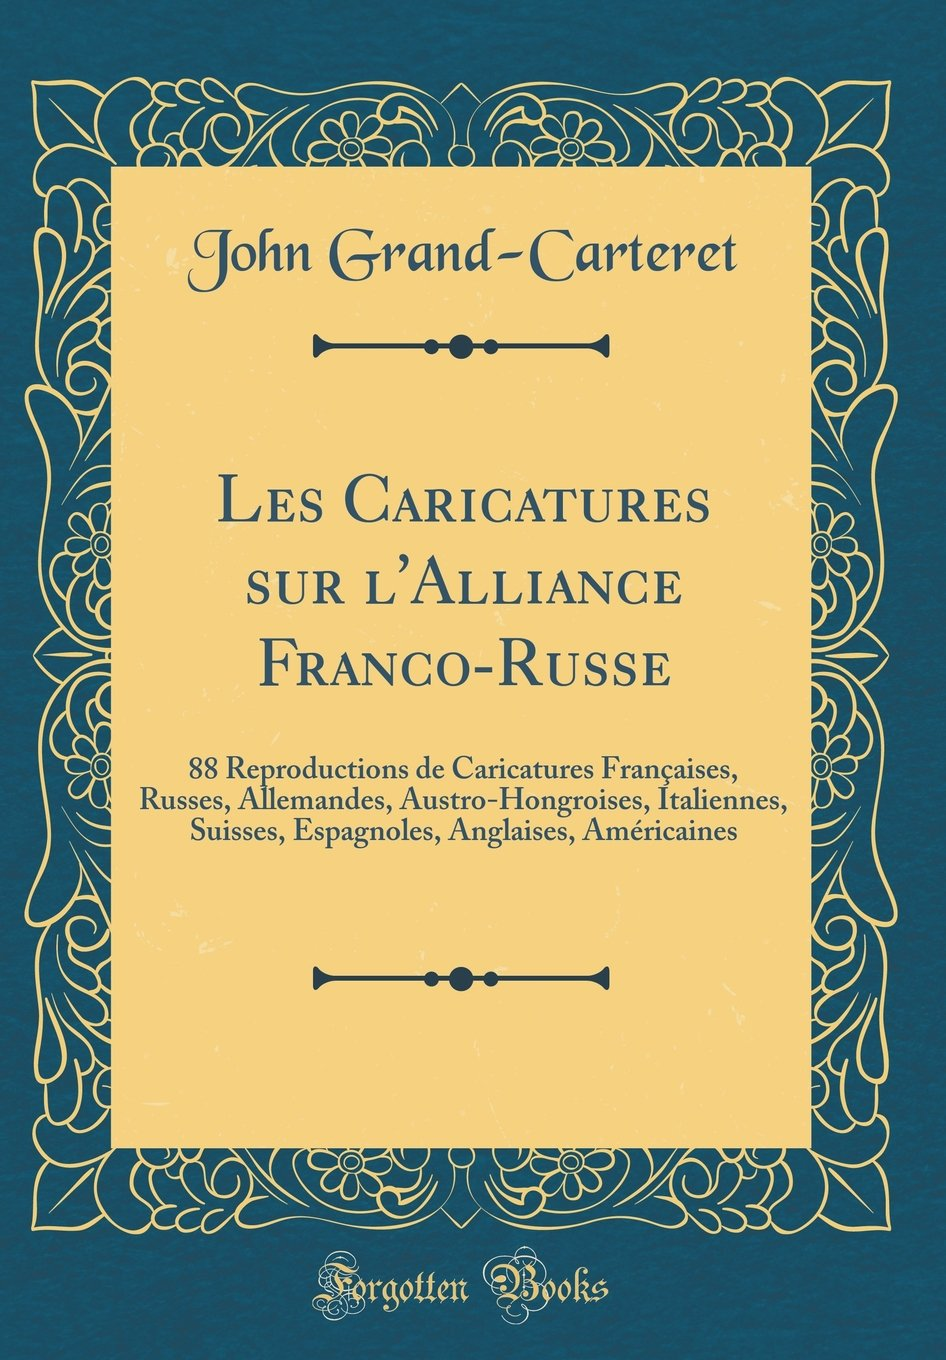 Download Les Caricatures sur l'Alliance Franco-Russe: 88 Reproductions de Caricatures Françaises, Russes, Allemandes, Austro-Hongroises, Italiennes, Suisses, ... (Classic Reprint) (French Edition) ebook